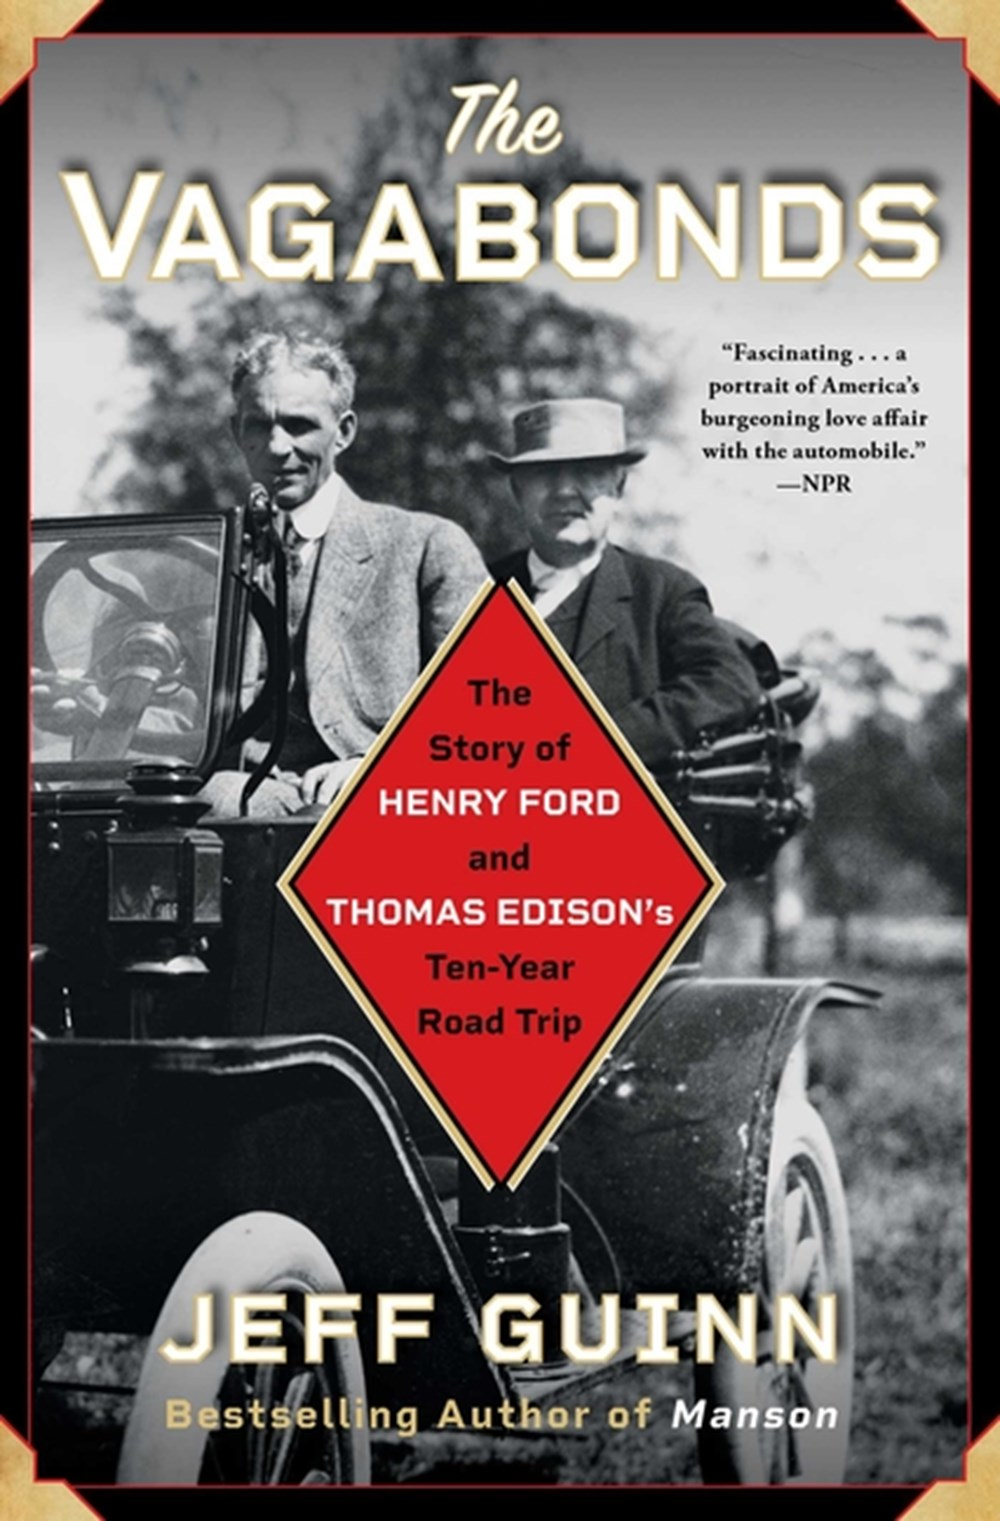 Vagabonds The Story of Henry Ford and Thomas Edison's Ten-Year Road Trip